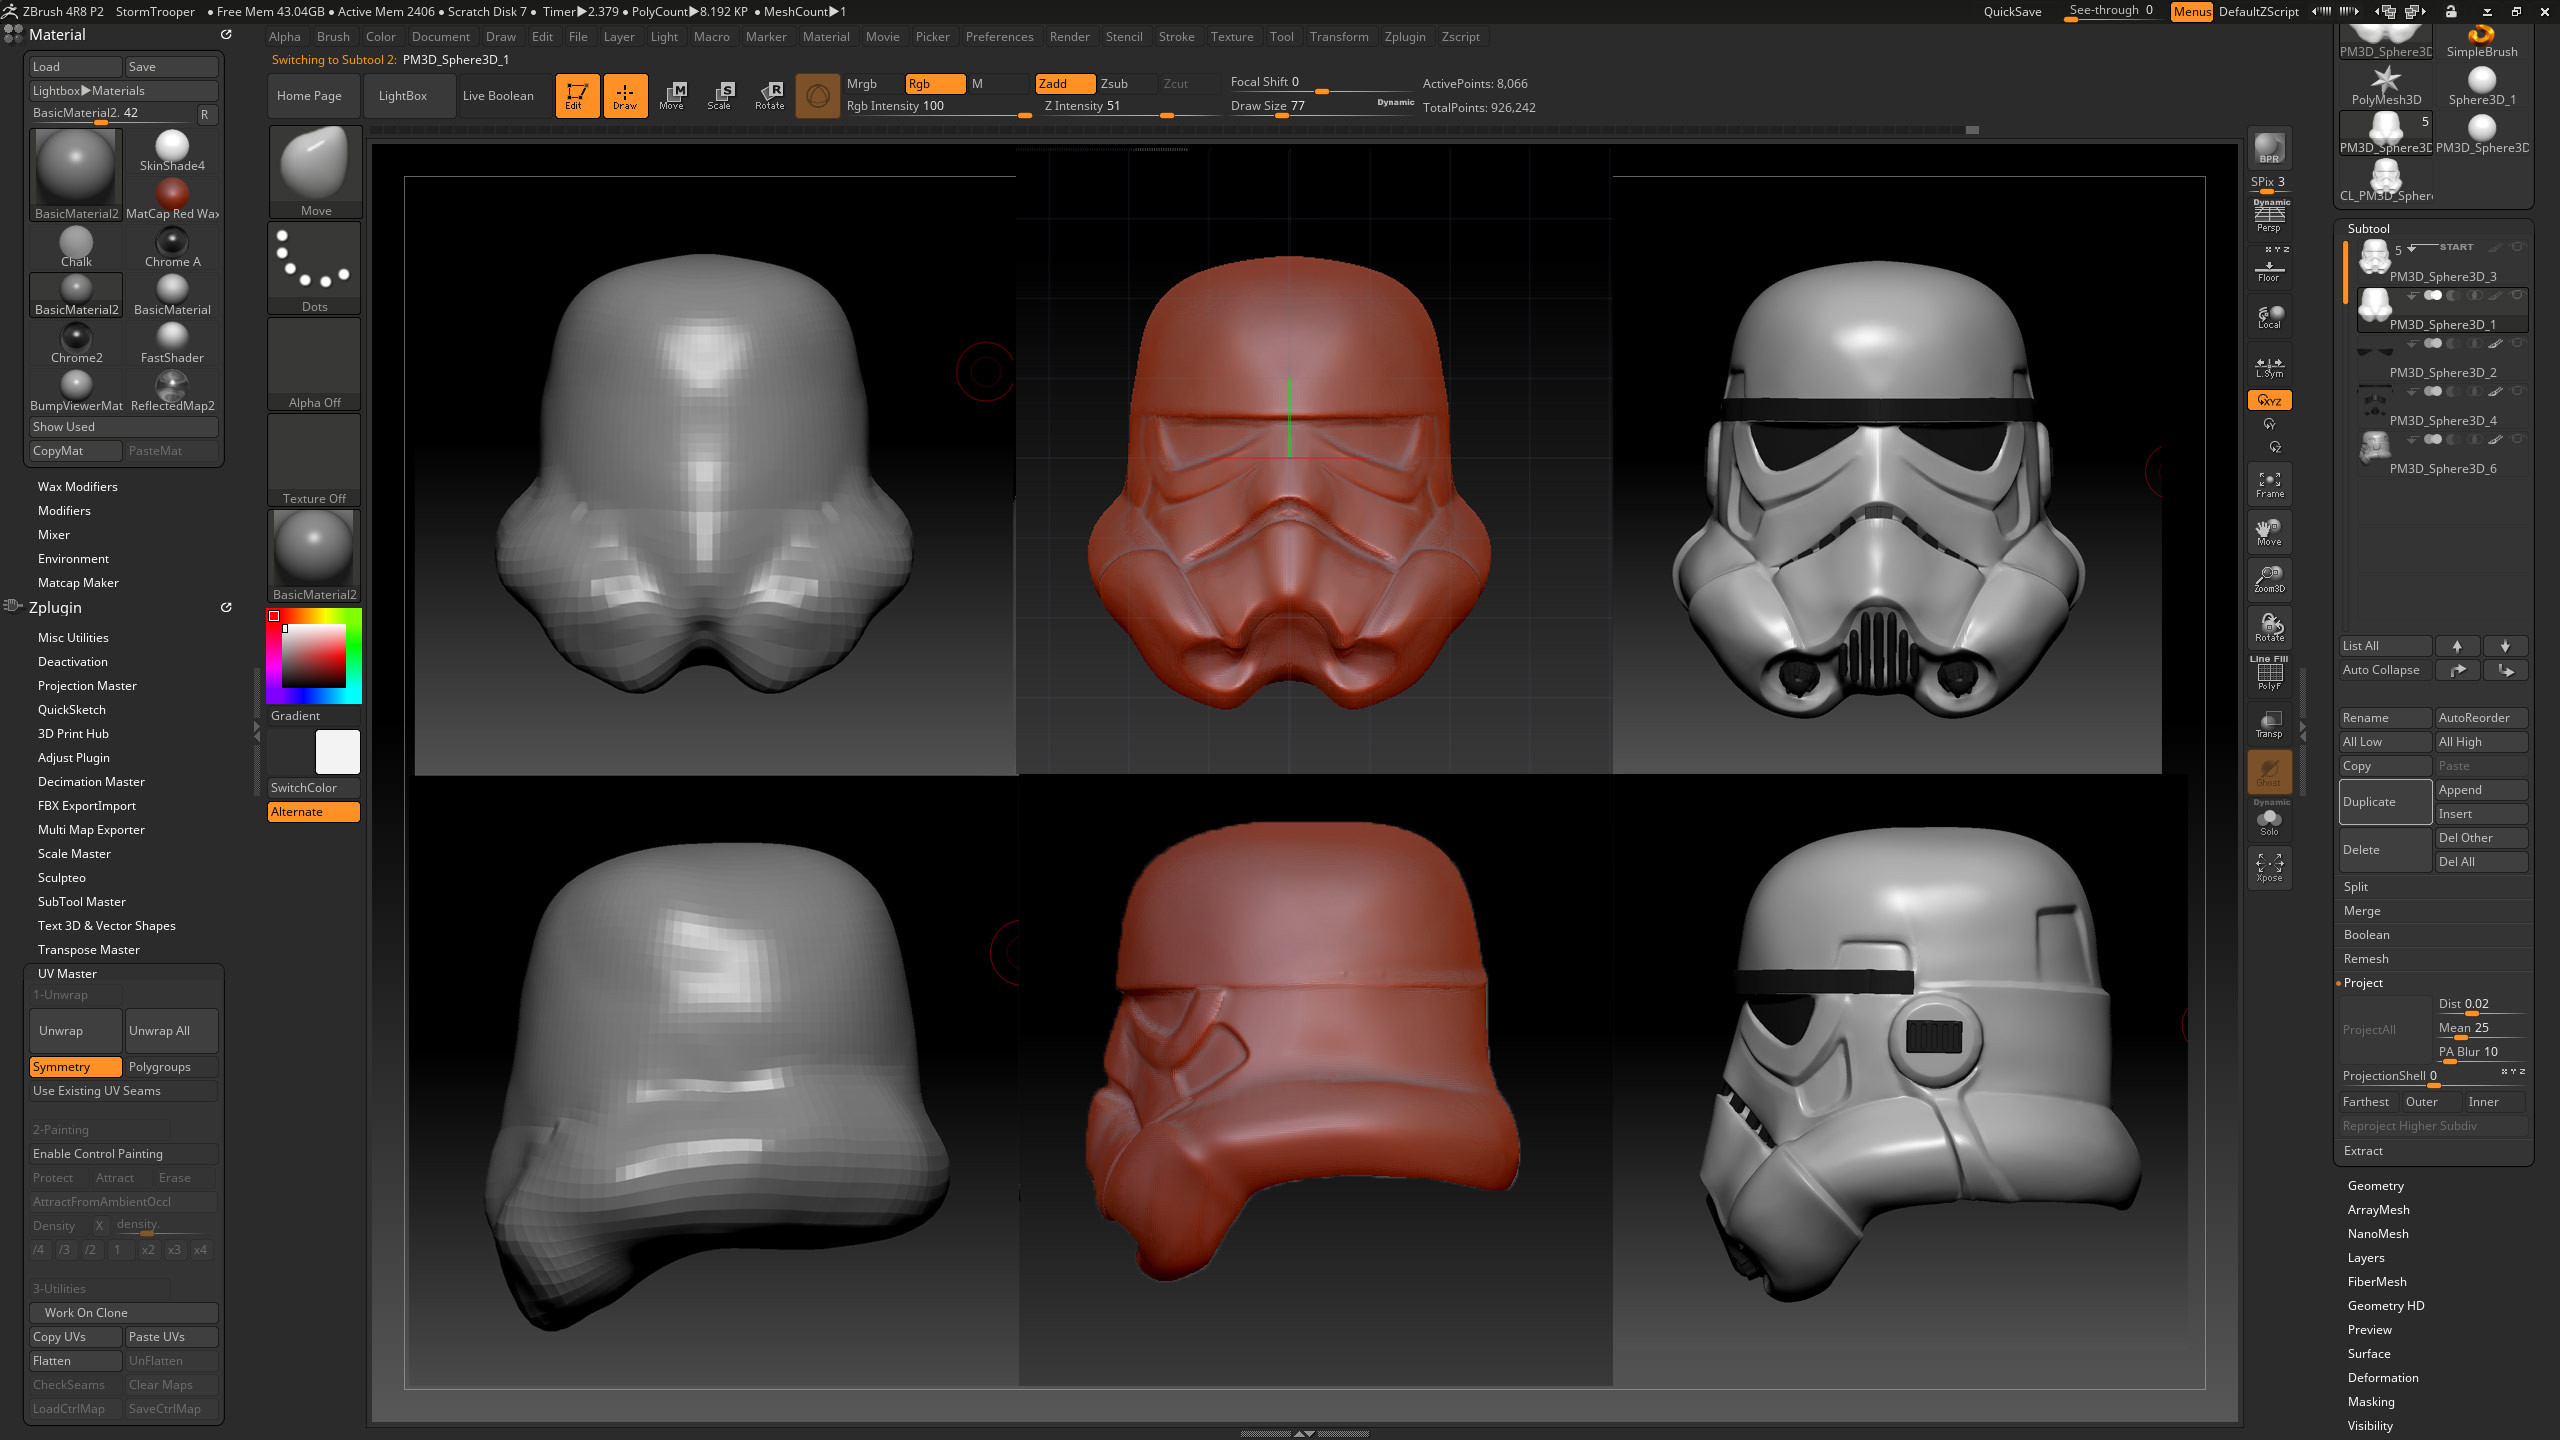 Storm trooper helmet sculpt